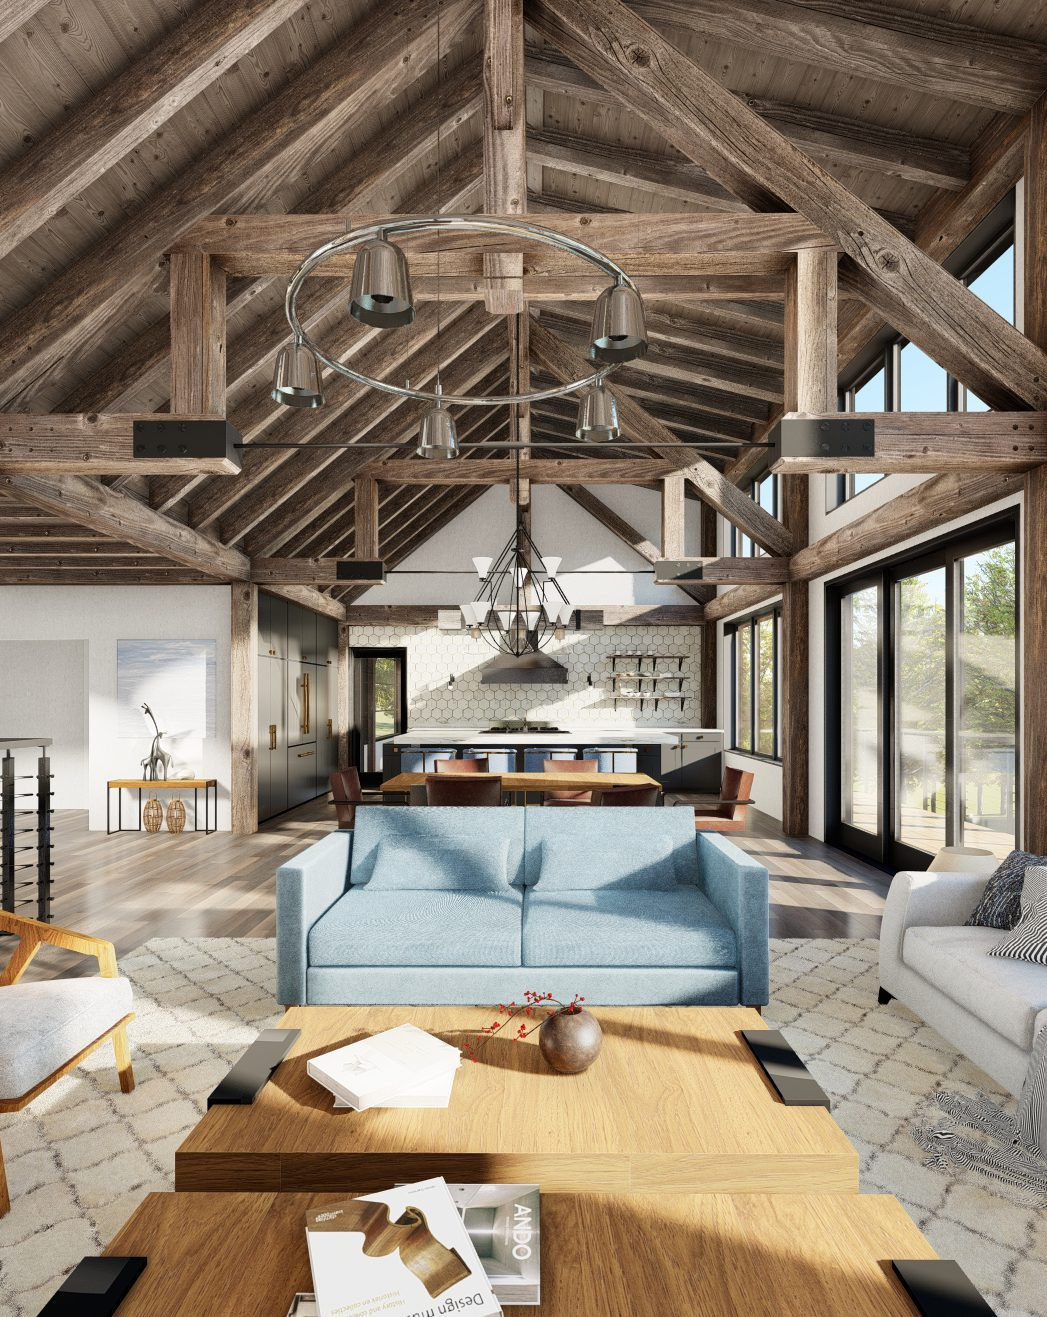 Normerica Timber Frames, House Plan, The Redstone 3920, Interior, Living Room, Open Concept, Cathedral Ceiling 2